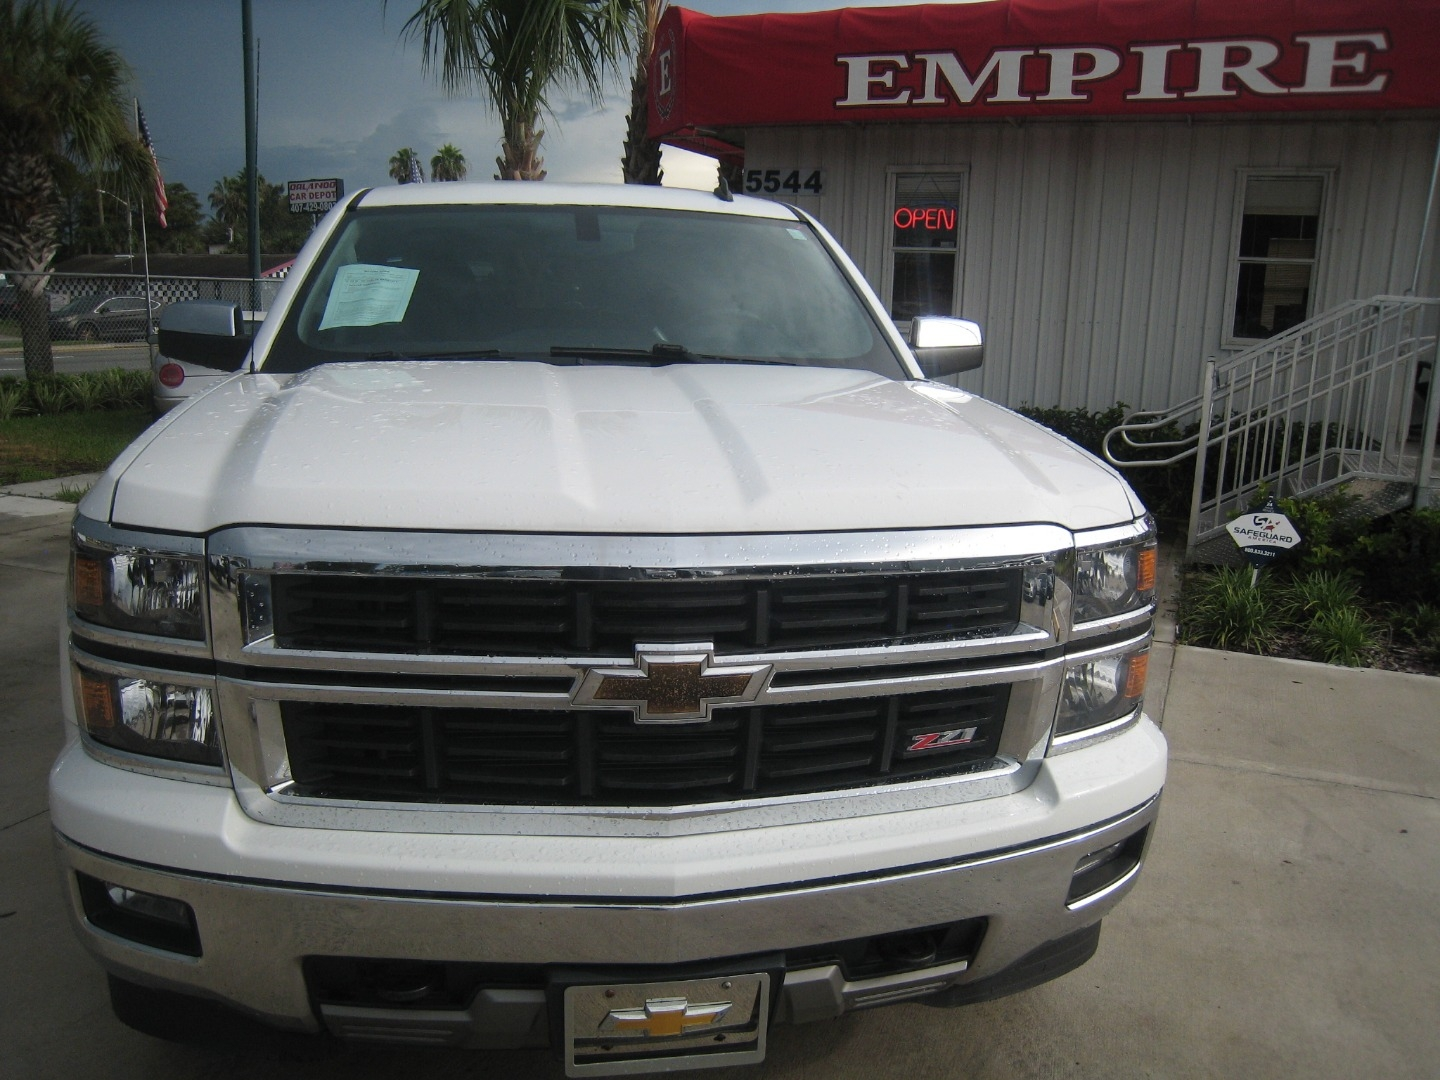 2014 chevrolet silverado 1500 lt z71 4x4 4dr crew cab 5 8 ft sb empire automotive group dealership in orlando 2014 chevrolet silverado 1500 lt z71 4x4 4dr crew cab 5 8 ft sb